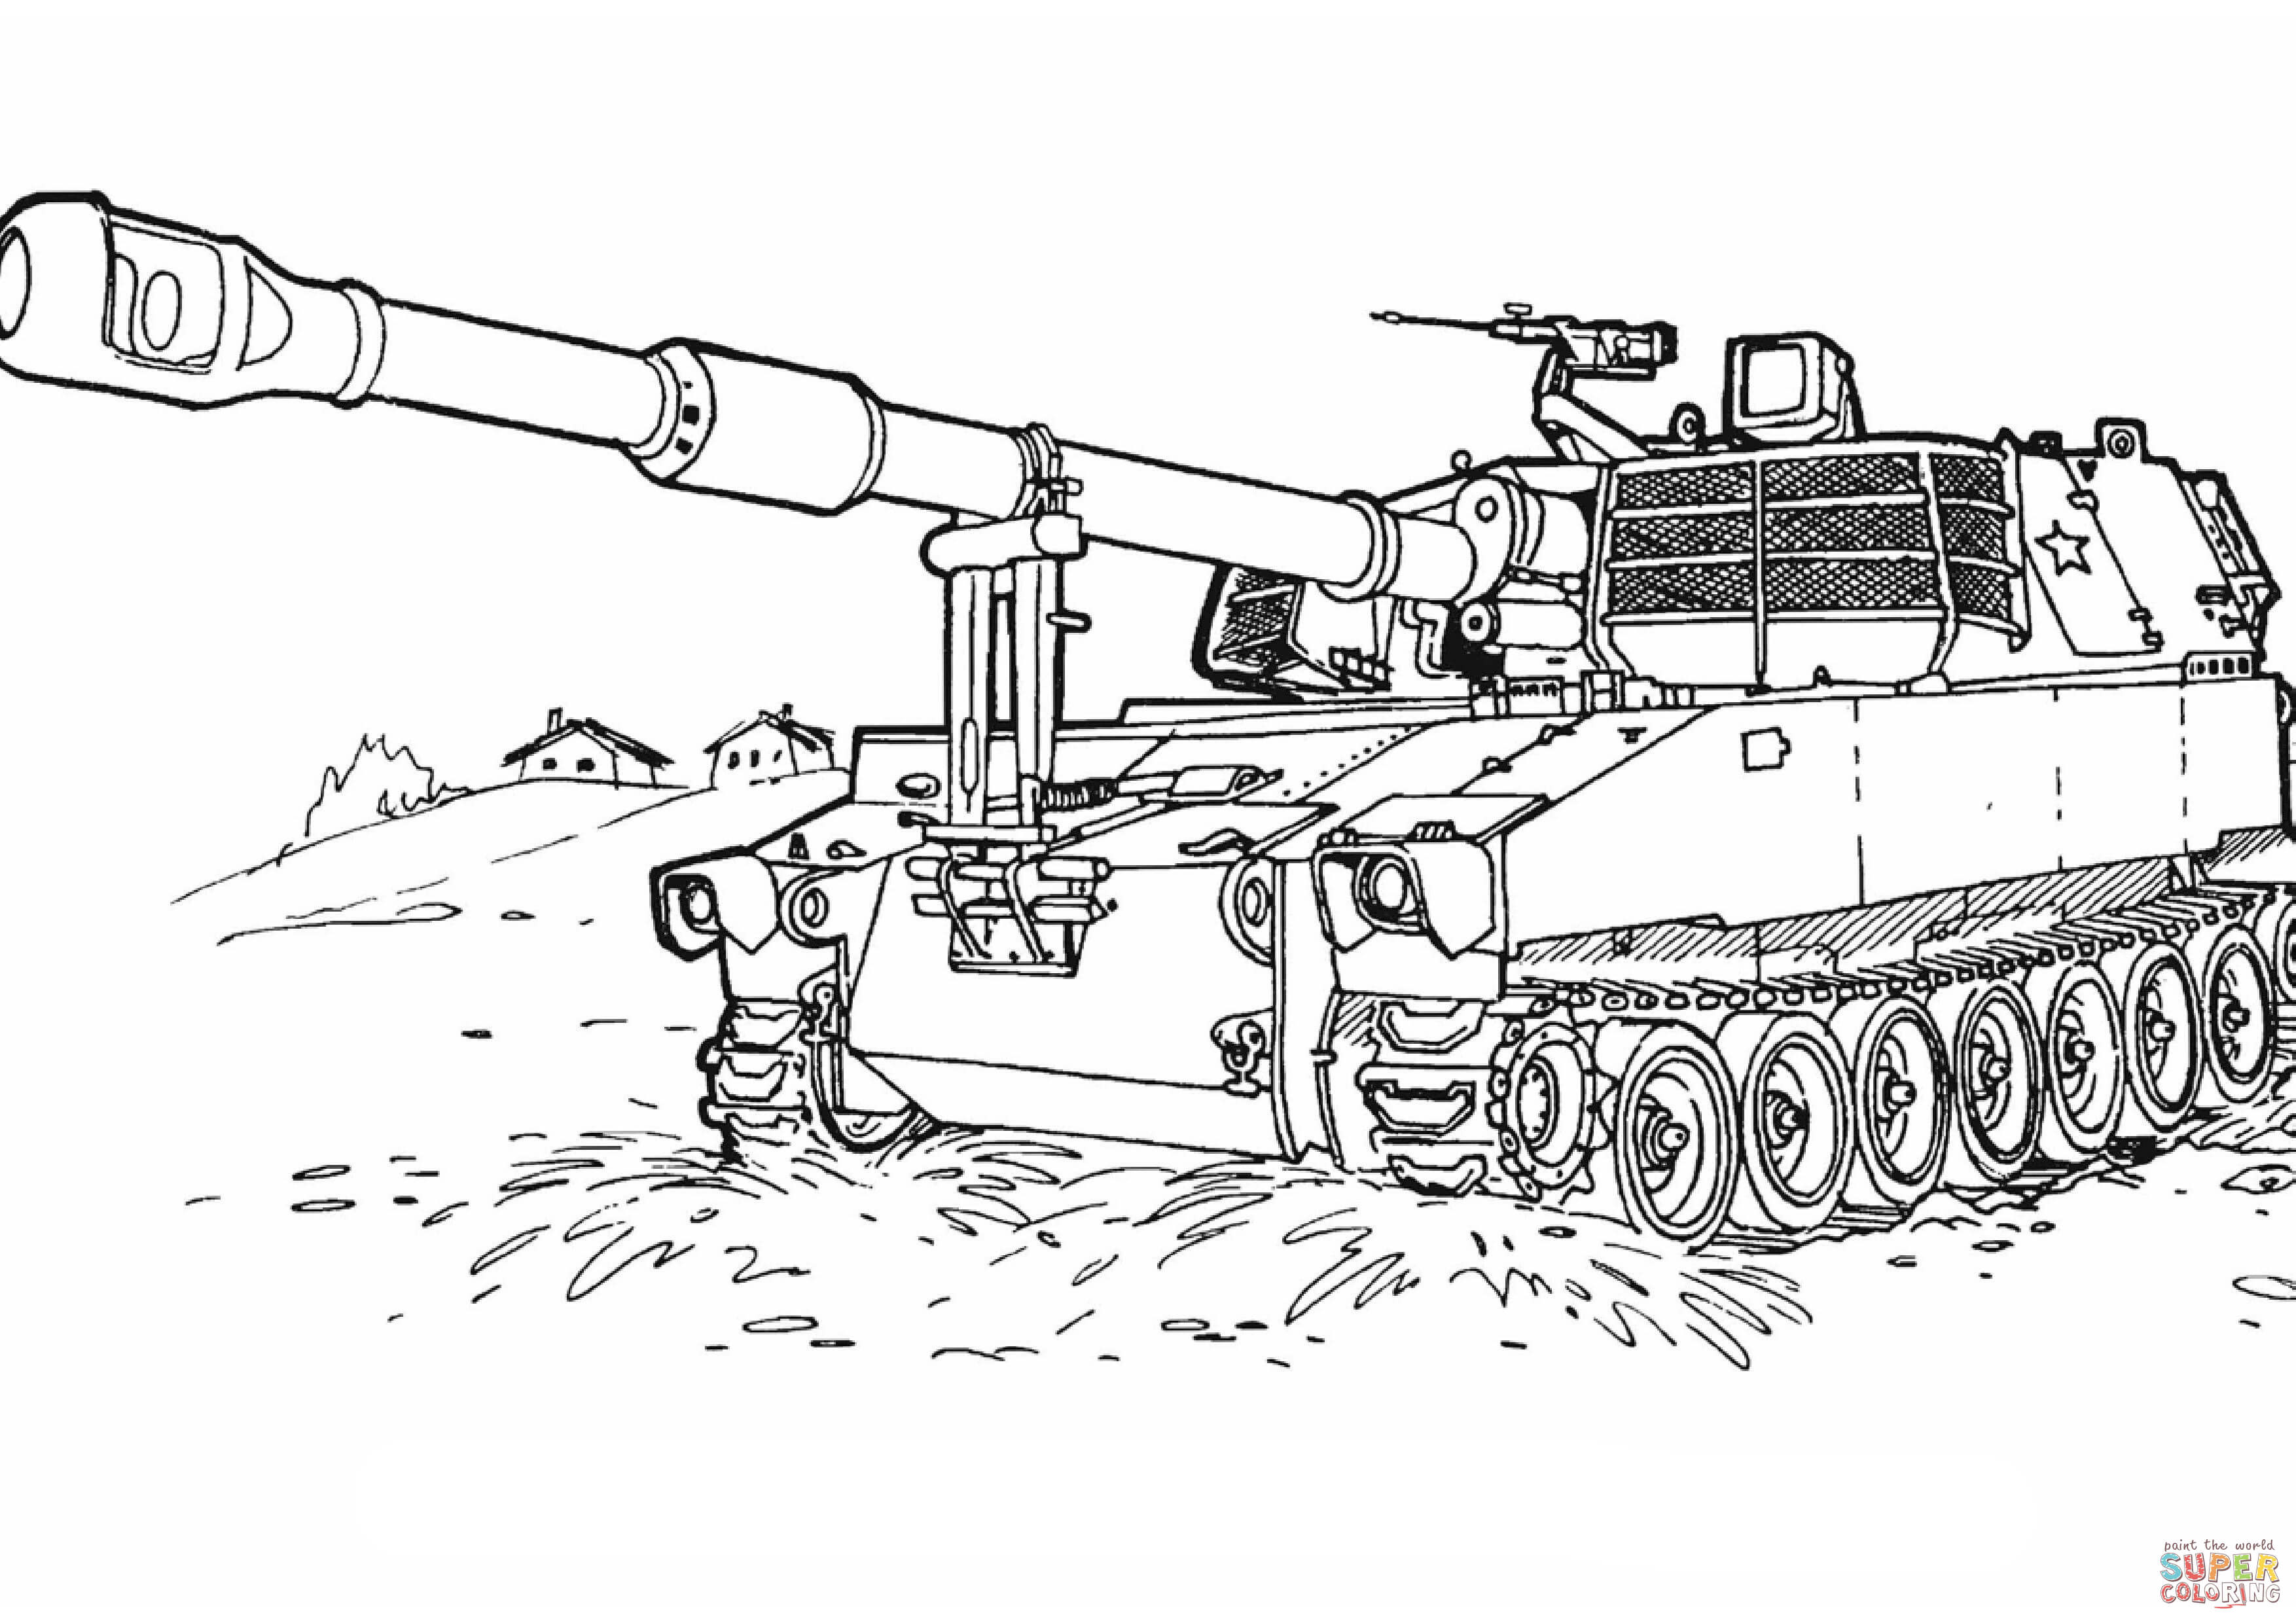 Lego army men coloring pages - 8 Pics Of Lego Army Coloring Pages Army Vehicles Coloring Pages